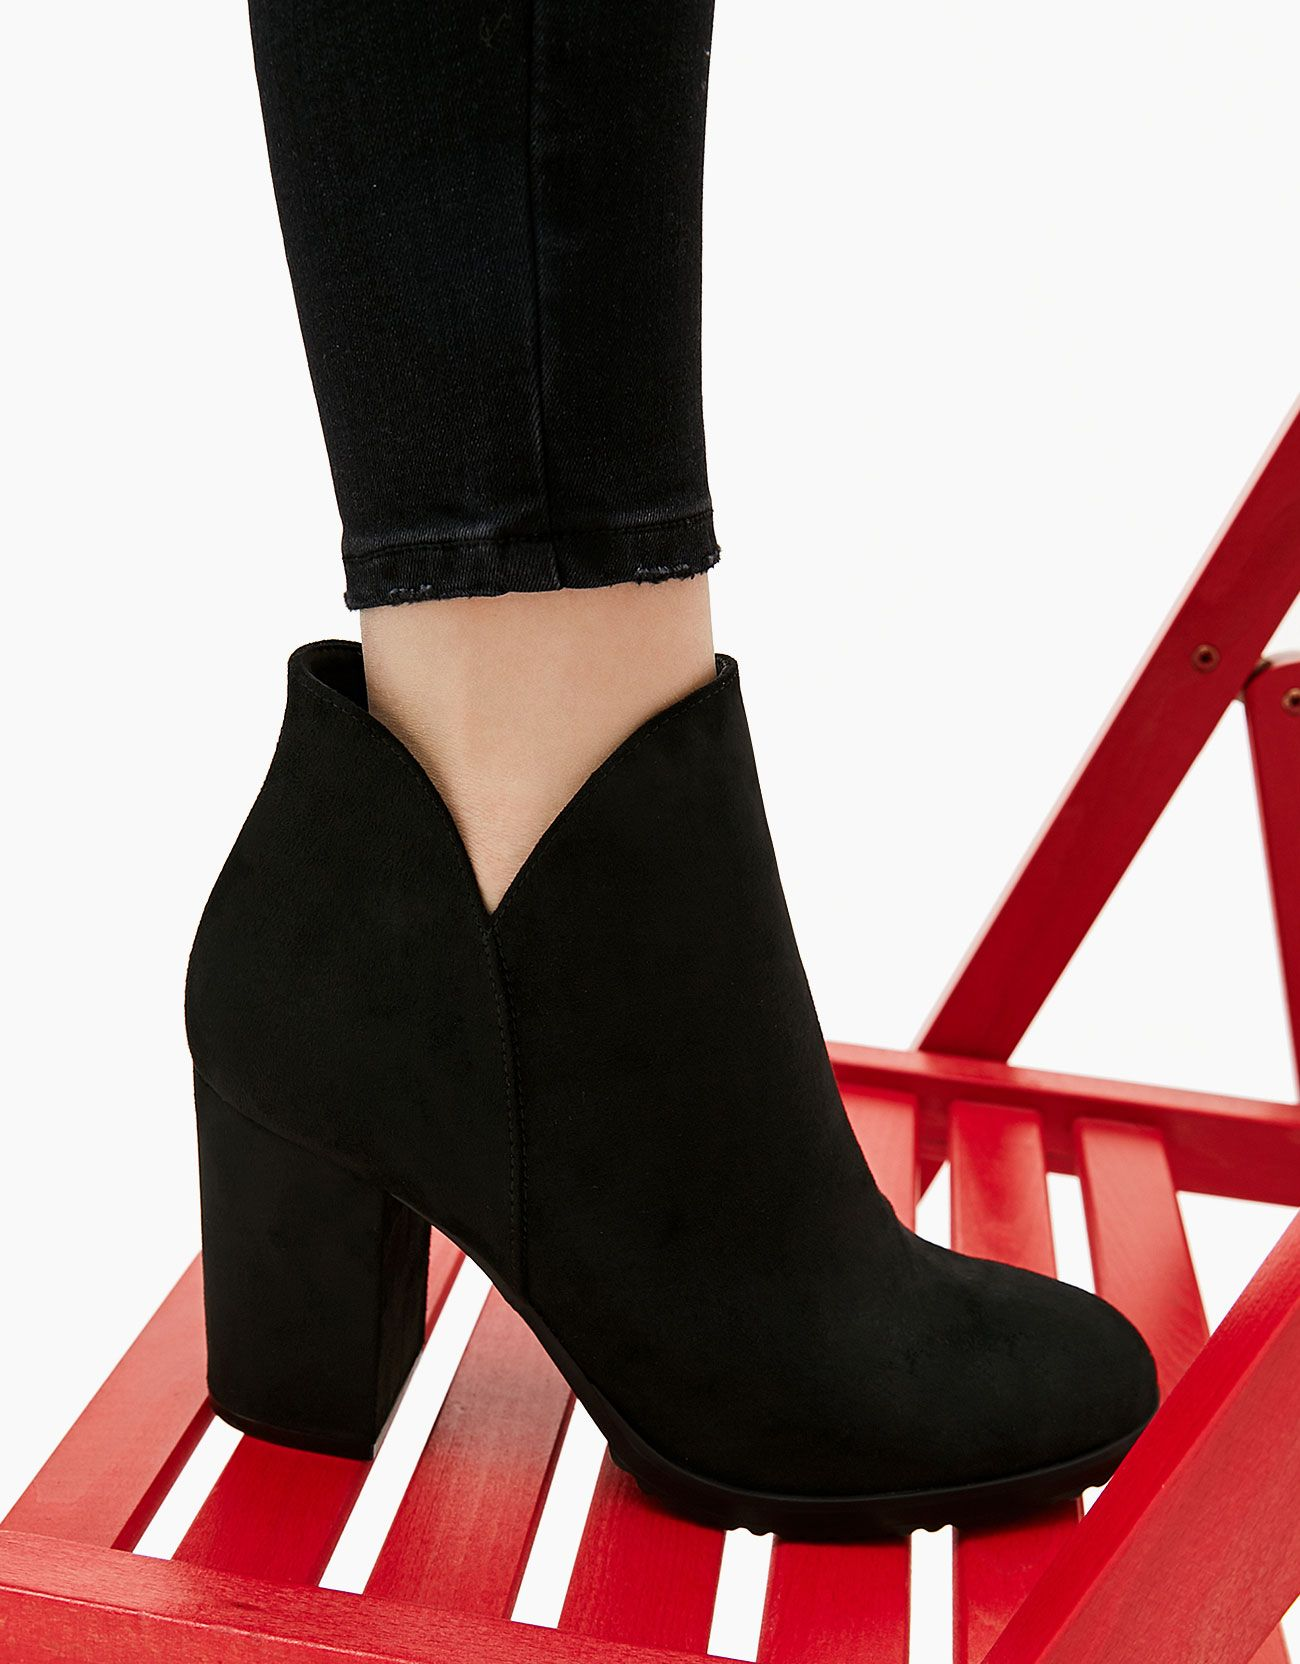 3820623dfb0 ... botines dama rojos. ankle boots with block mid-heel. Discover this and  many more items in Bershka with new products every week